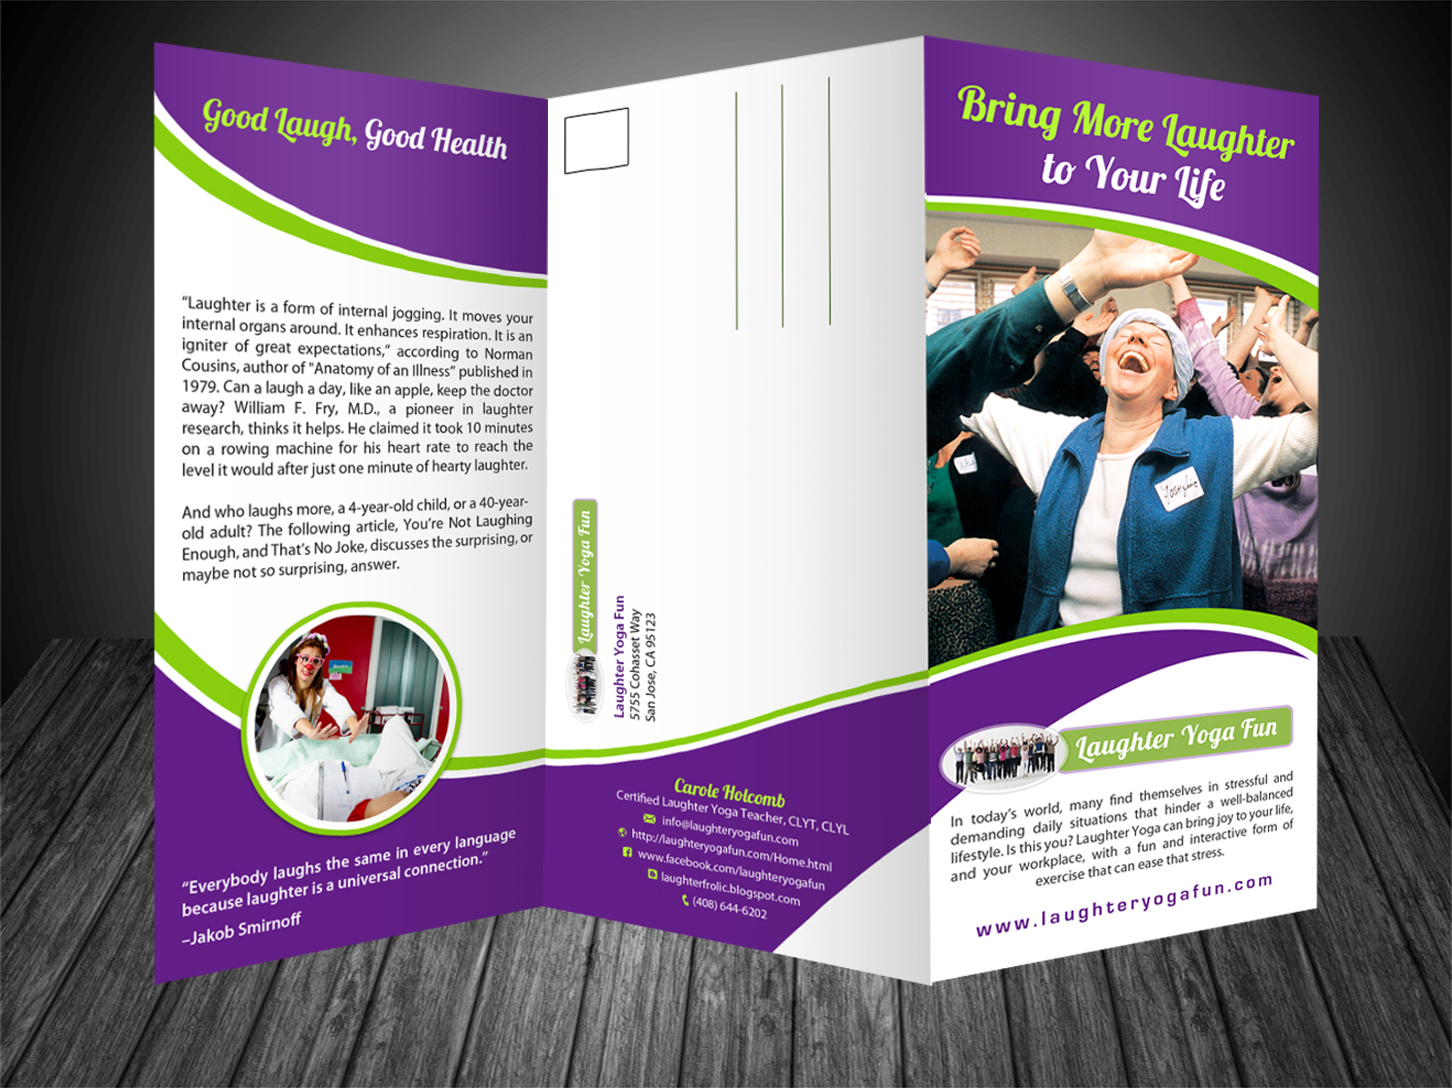 Elegant, Traditional Flyer Design for Laughter Yoga Fun by ... on animation flyer, illustrator flyer, design flyer, flex flyer, sharepoint flyer, software flyer, iphone flyer, microsoft flyer, twitter flyer, seo flyer, soap flyer, psd flyer,